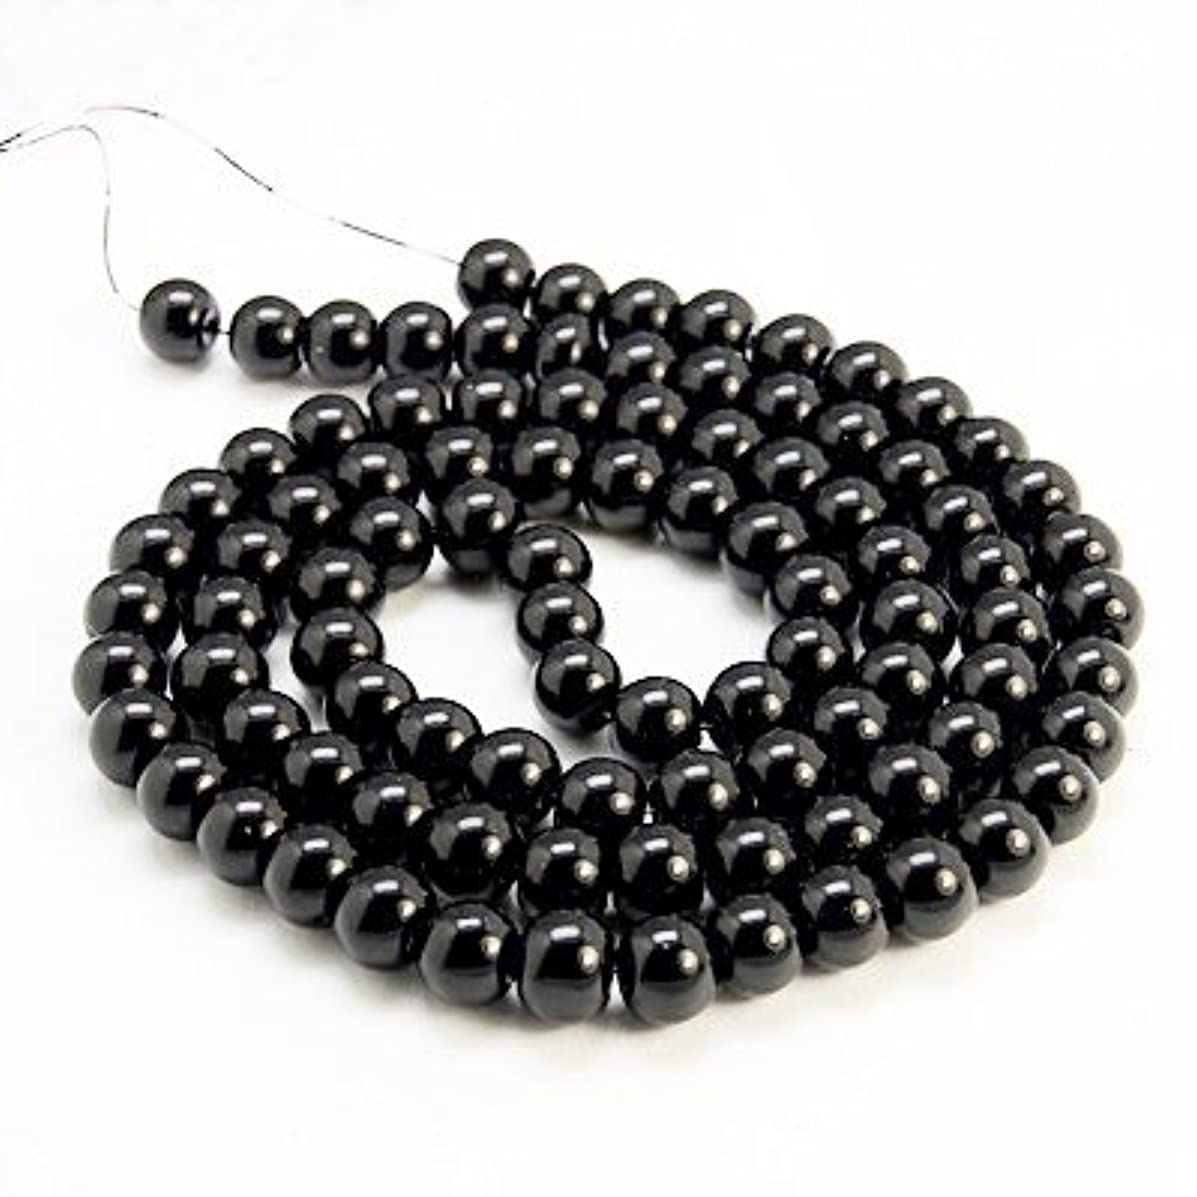 AMZ Beads - Package of 200! 6mm Glass Round Pearls Jewelry Making Loose Pearl Beads … (Jet Black)